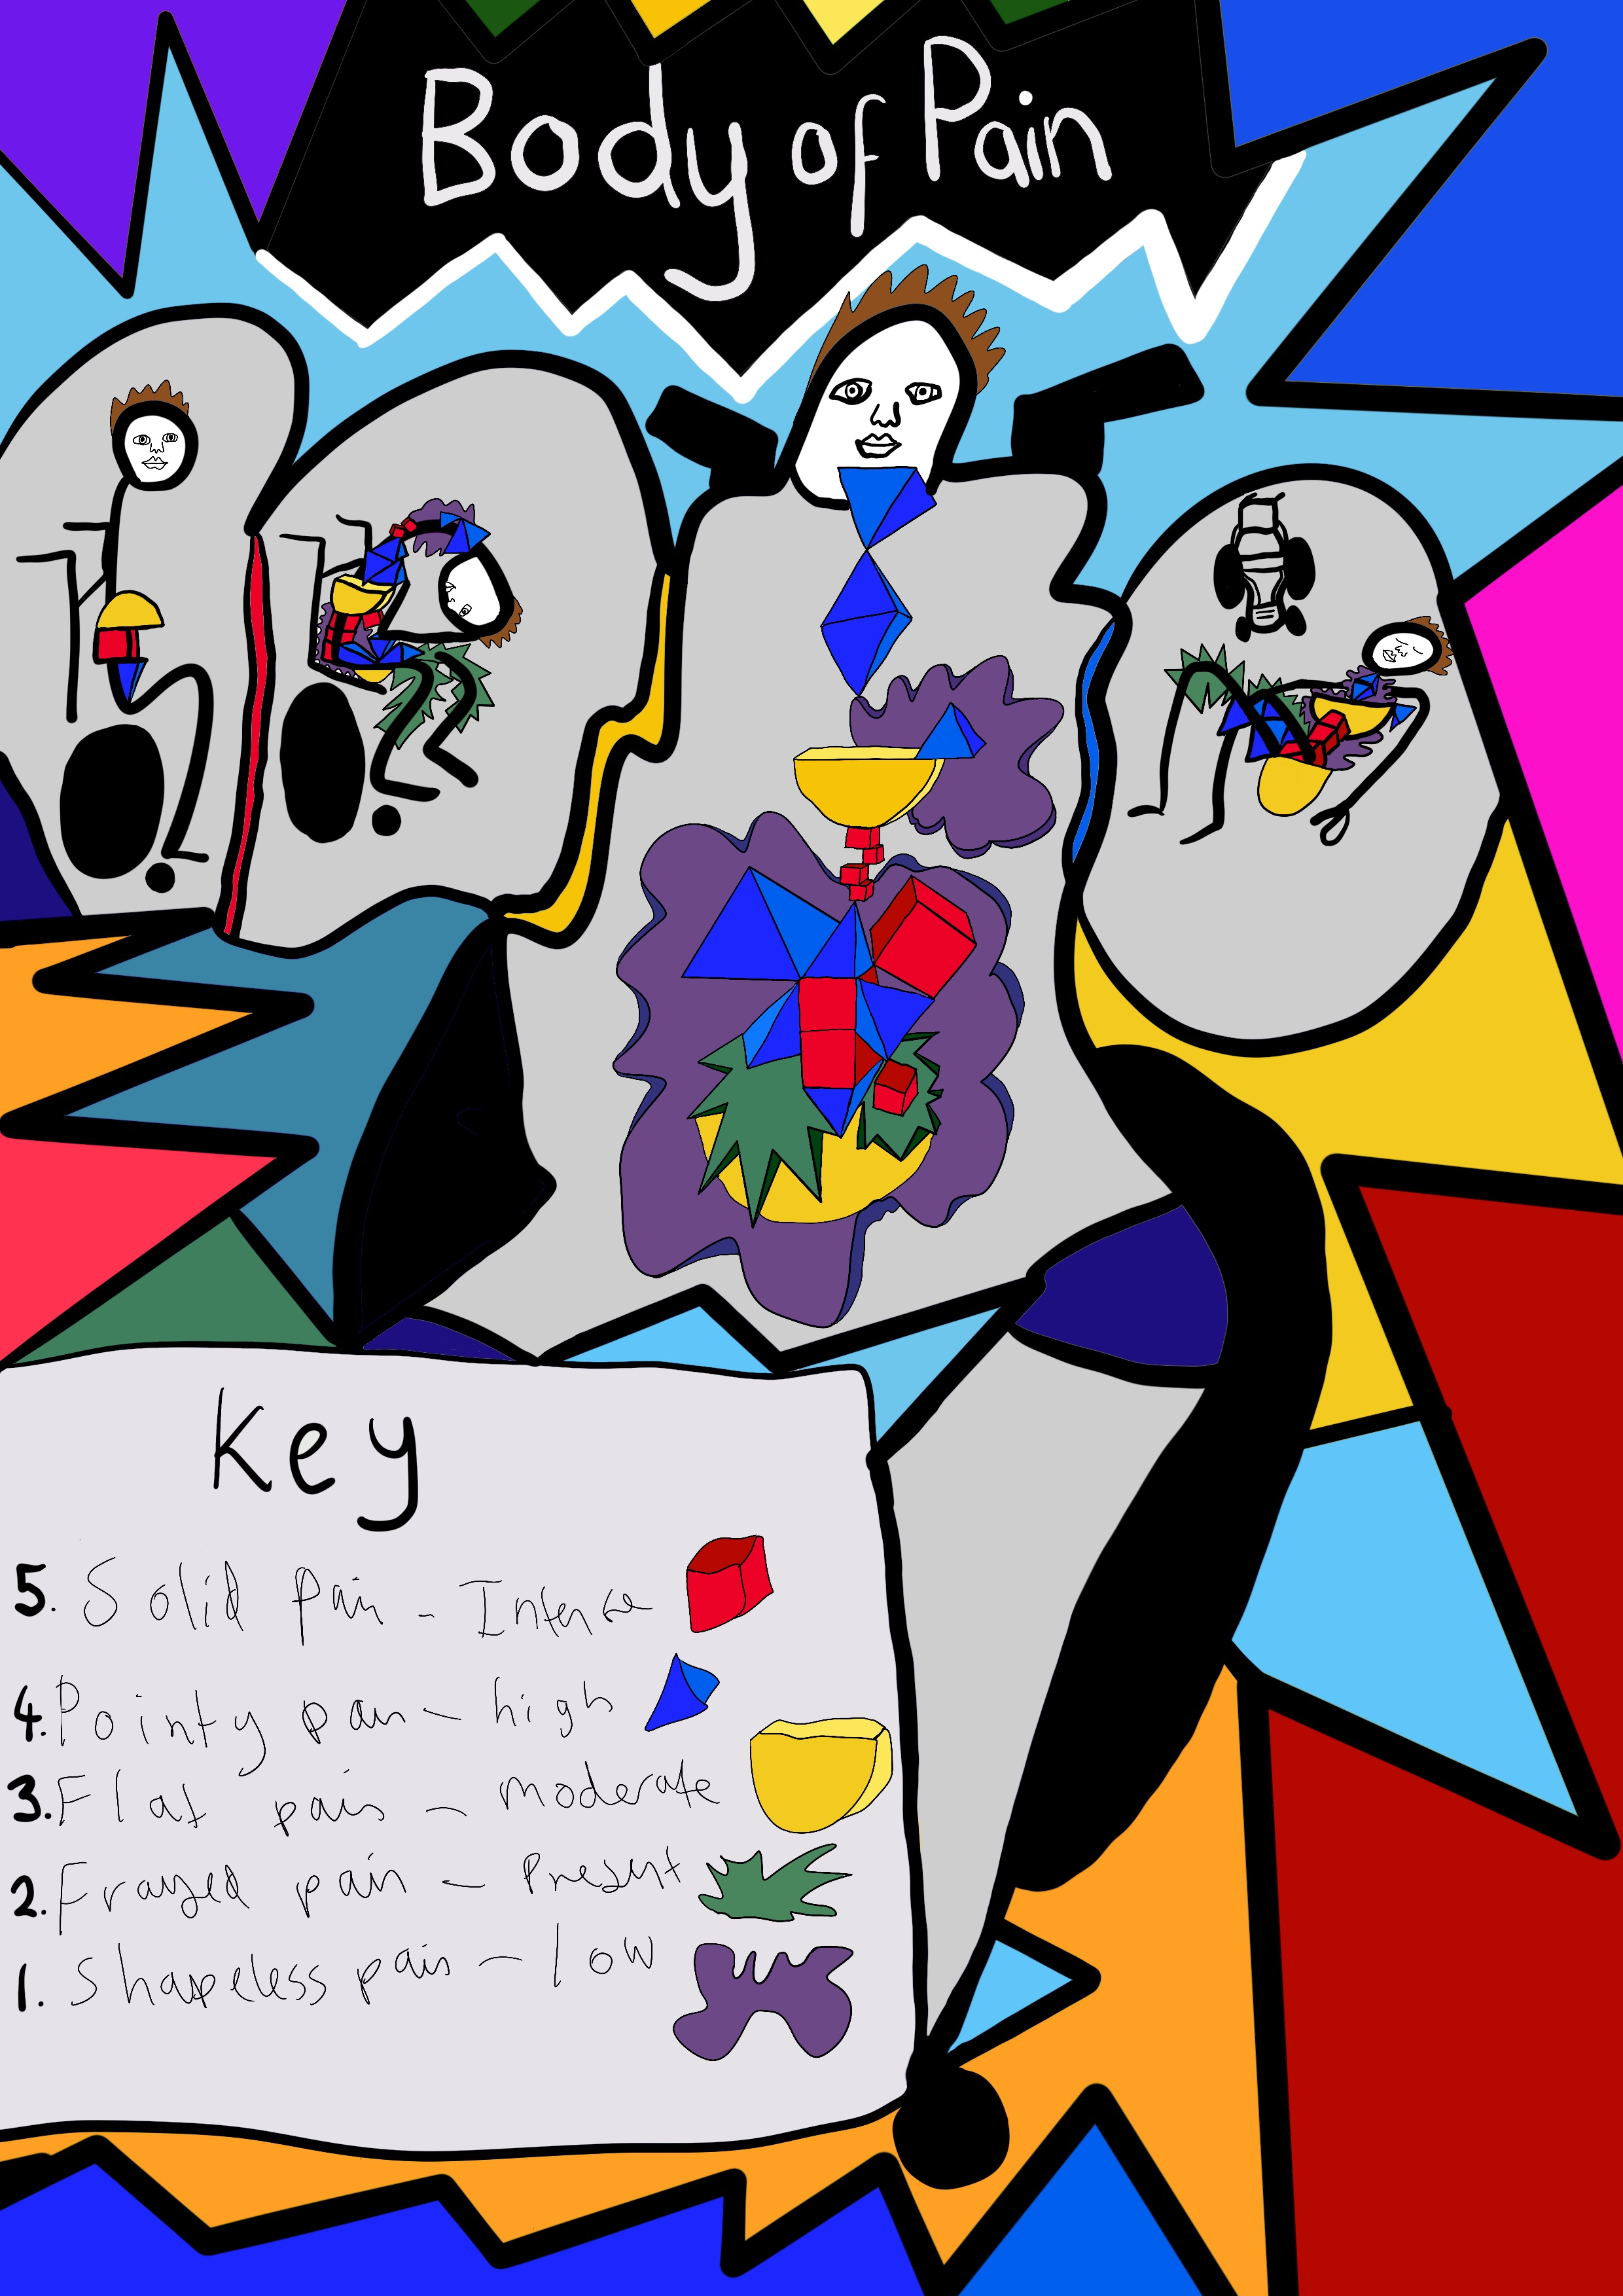 A digitised drawing with a background of different coloured spiky shapes (purple, light blue, dark blue, pink, yellow, orange and pink). White writing at the top says 'Body of Pain'. Four figures of Touretteshero and her wheelchair can be seen with different colourful blocks (red, blue, yellow, green and purple) making up the pain in her body. A key at the bottom reads: 5. Solid Pain - Intense (red block). 4. Pointy Pain - High (blue block). 3. Flat Pain - Moderate (yellow block). 2. Frayed Pain - Present (green block). 1. Shapeless pain - Low (purple block).